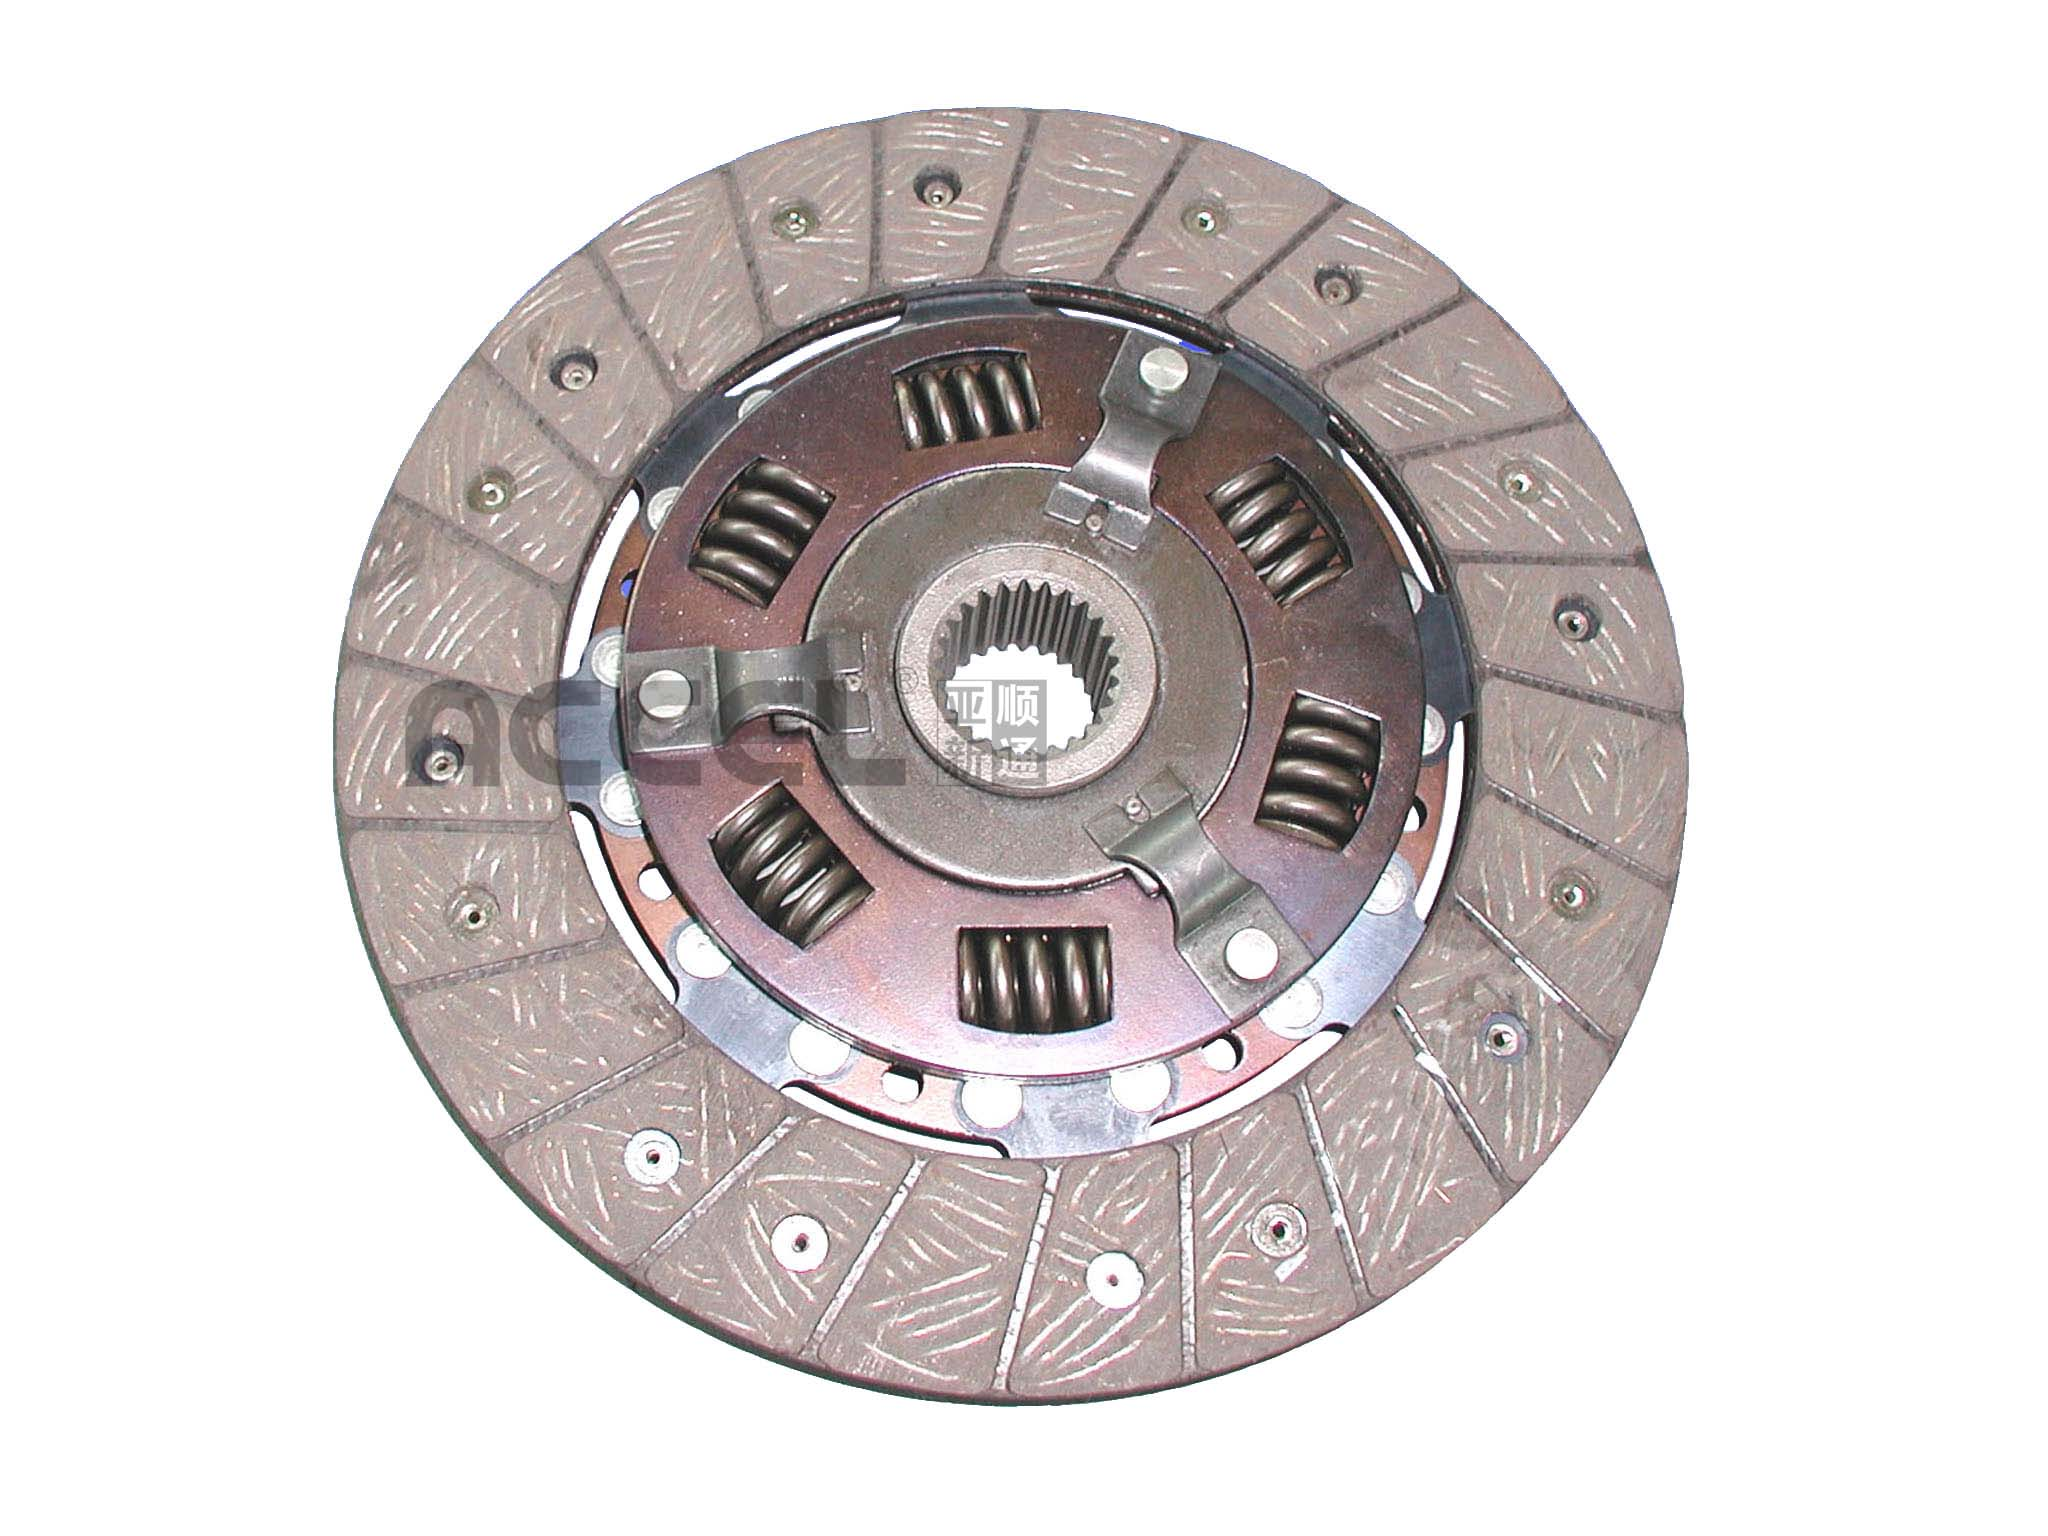 Clutch Disc/OE:1861 631 001/215*145*25*28.2/ACE-059/FORD/CL0416